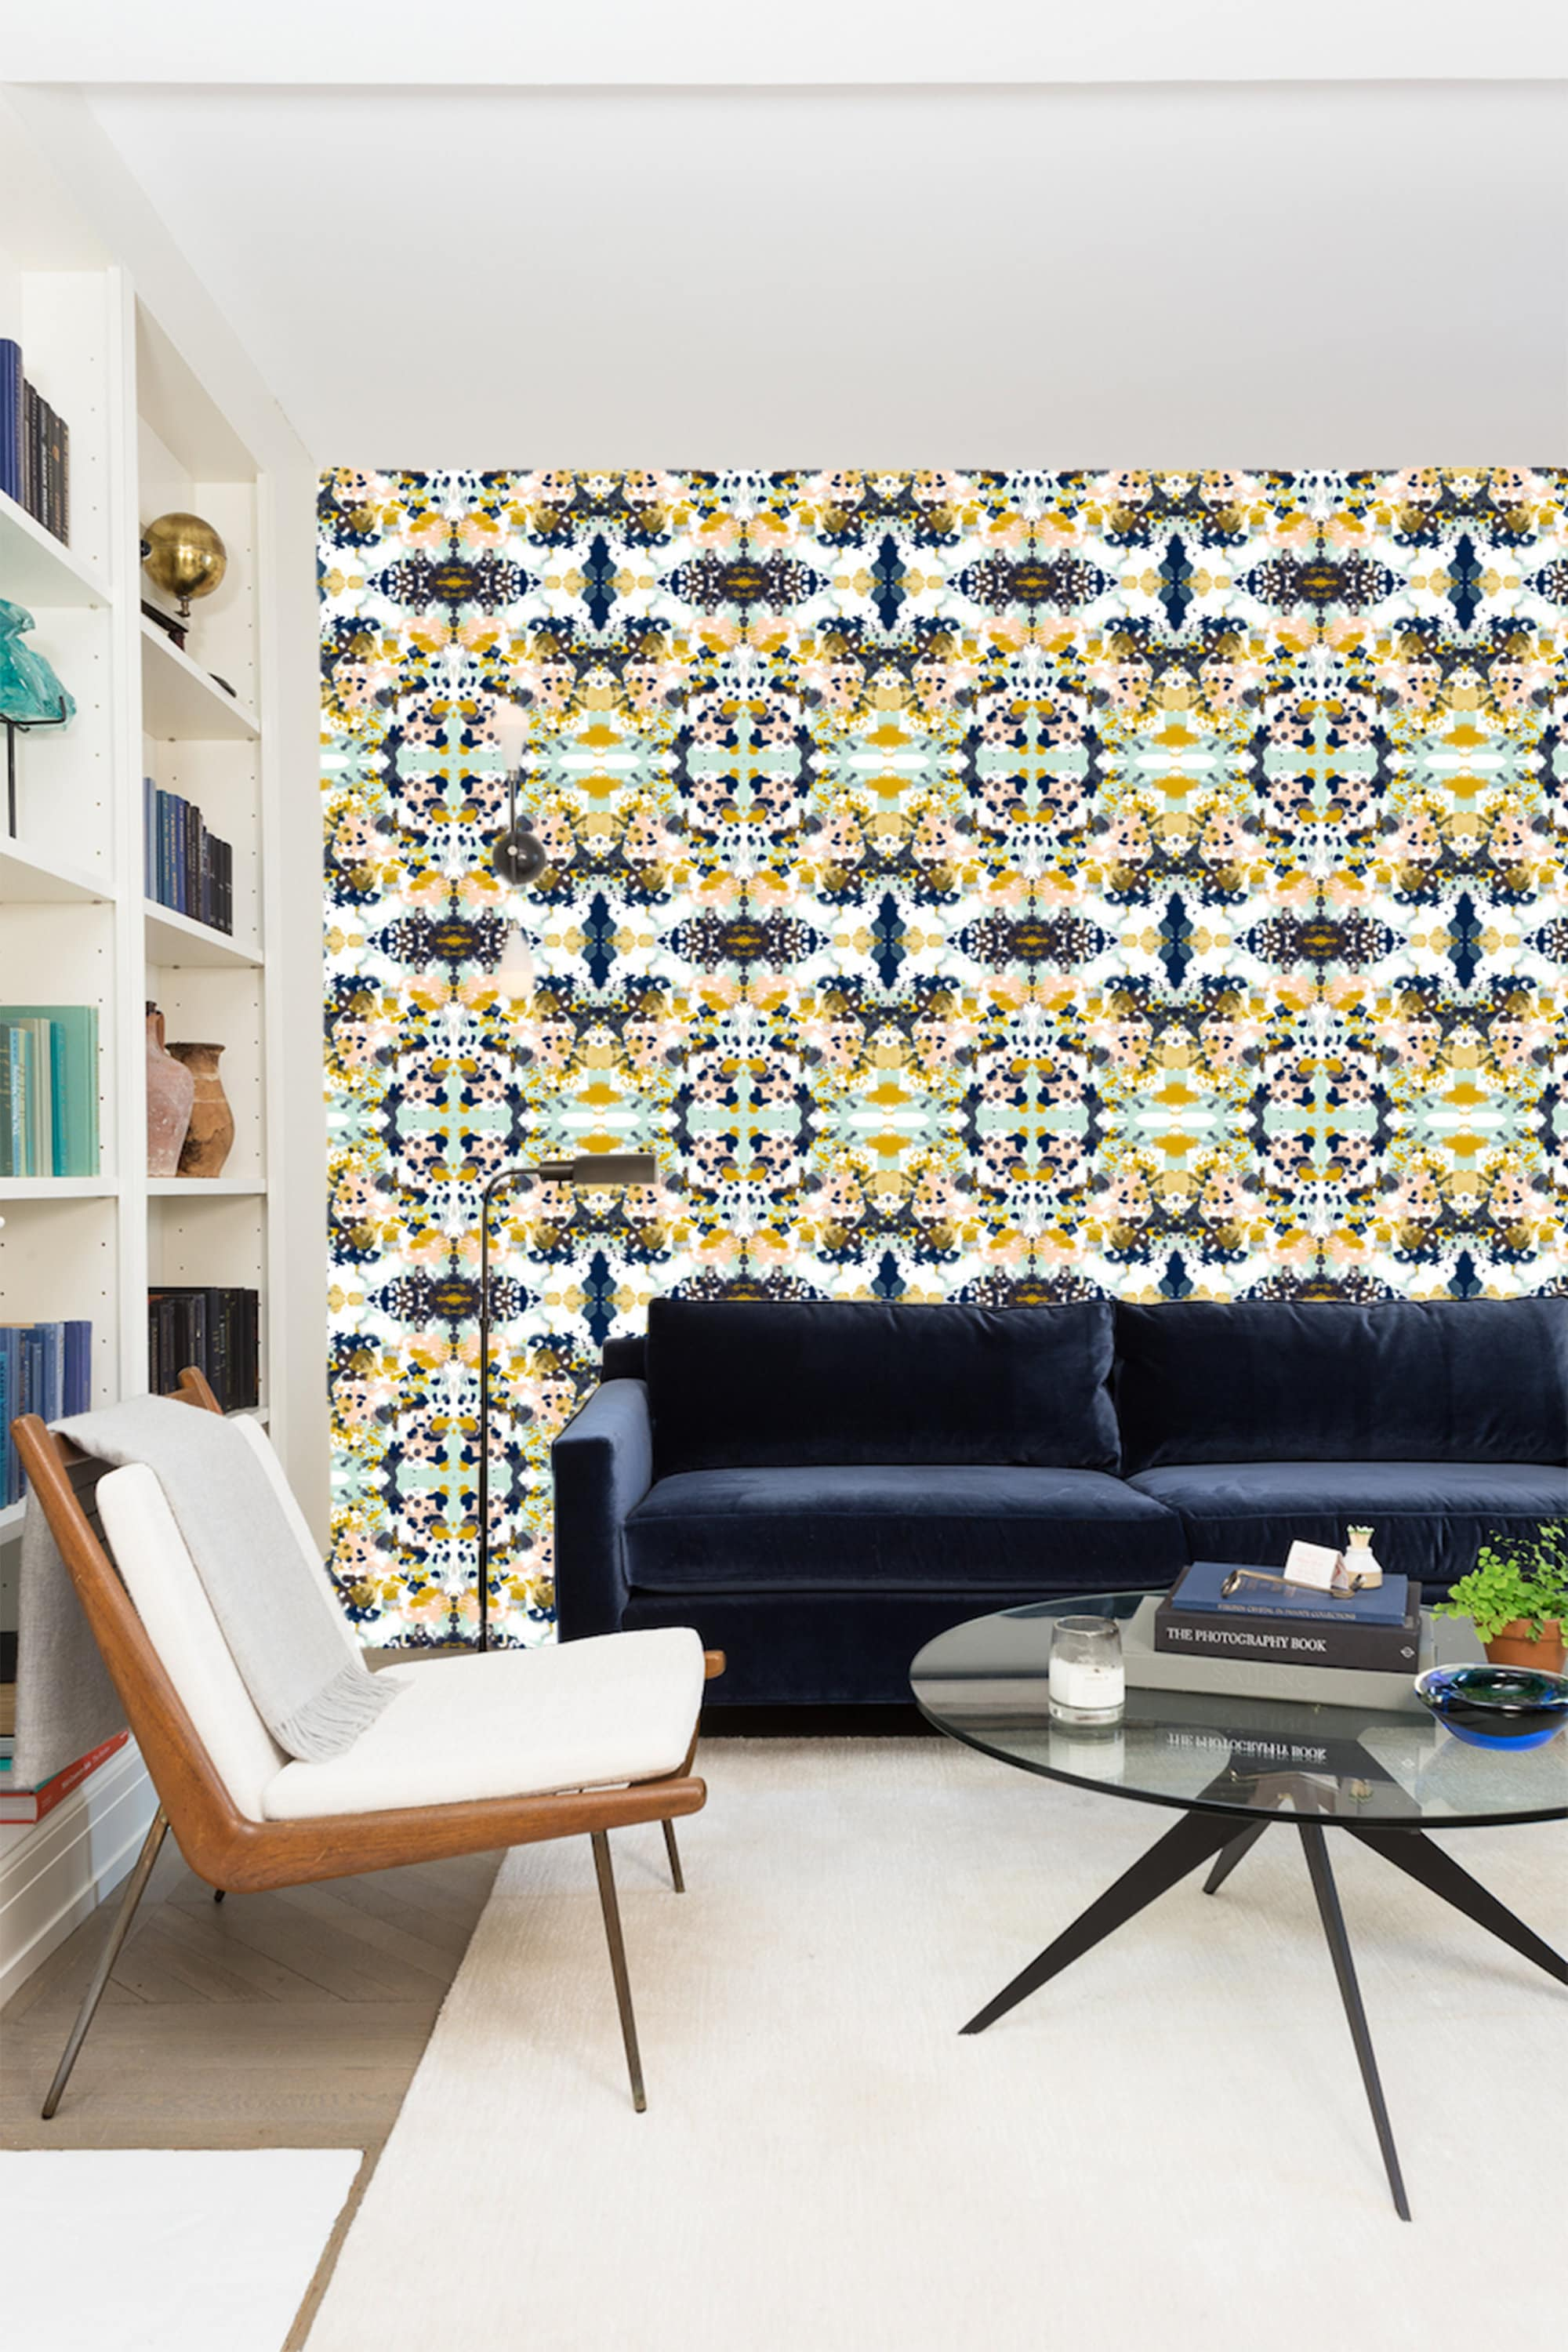 Navy Blue Yellow Abstract Wallpaper Removable Traditional Wallpaper Peel And Stick Wallpaper Navy Blue Wallpaper Self Adhesive Wallpaper